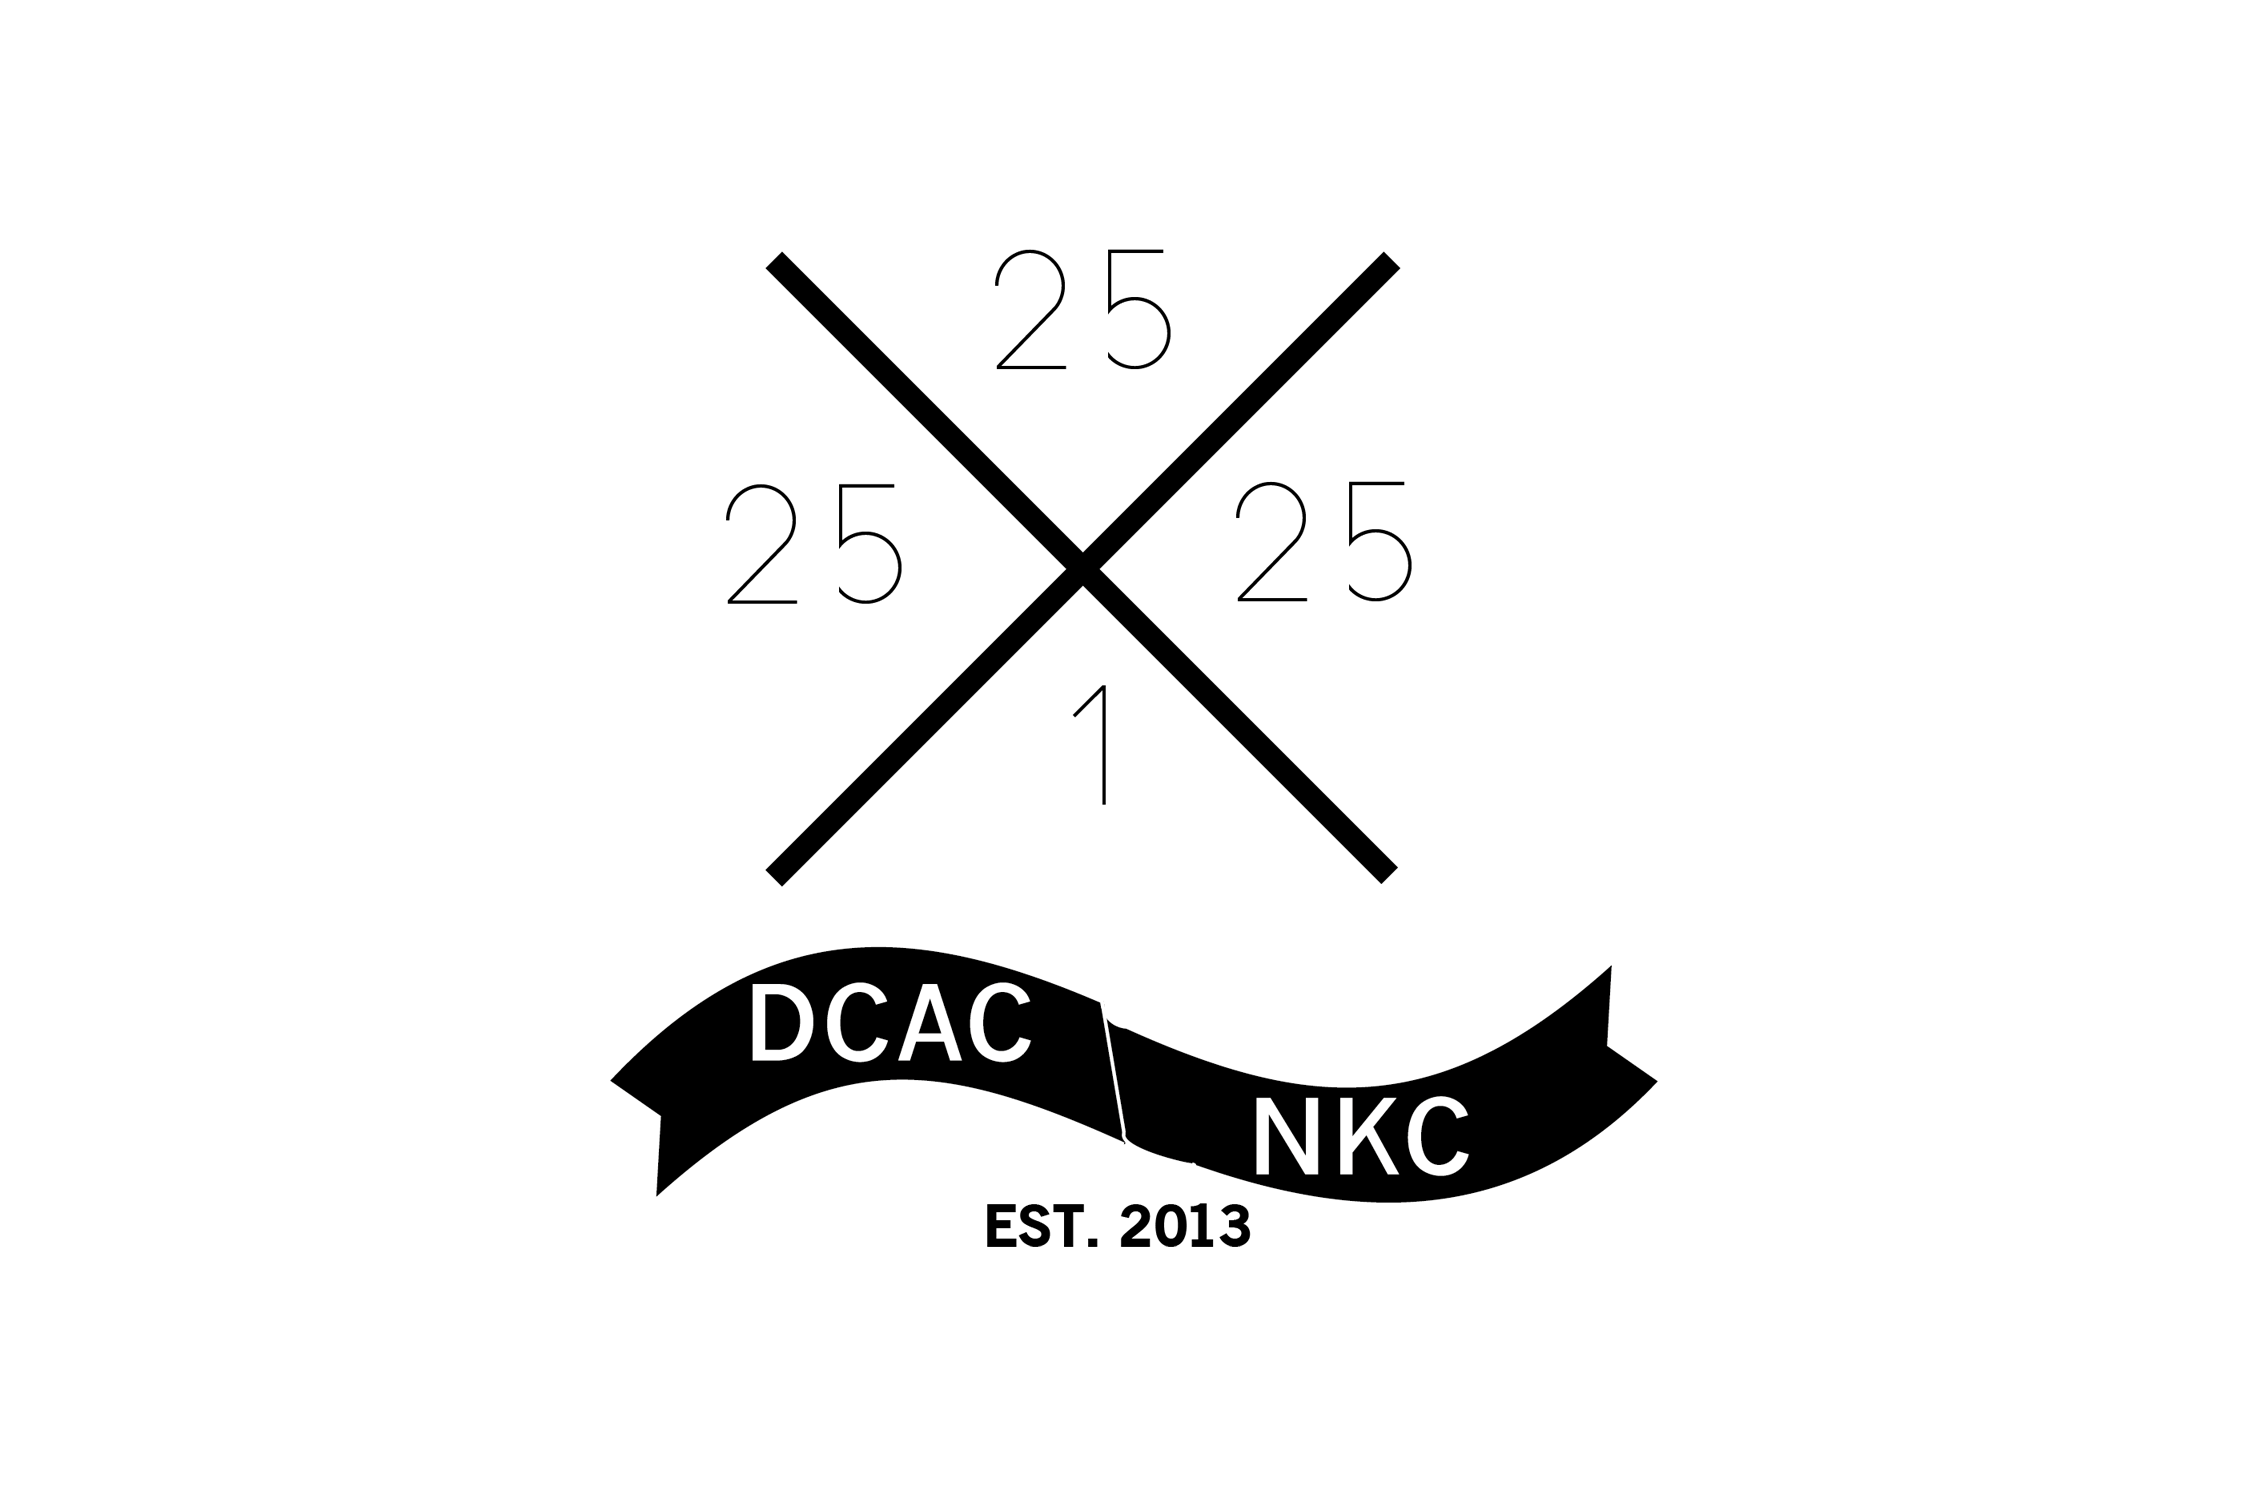 No Kings Collective - DC art events  - The 25 Project/Washington DC